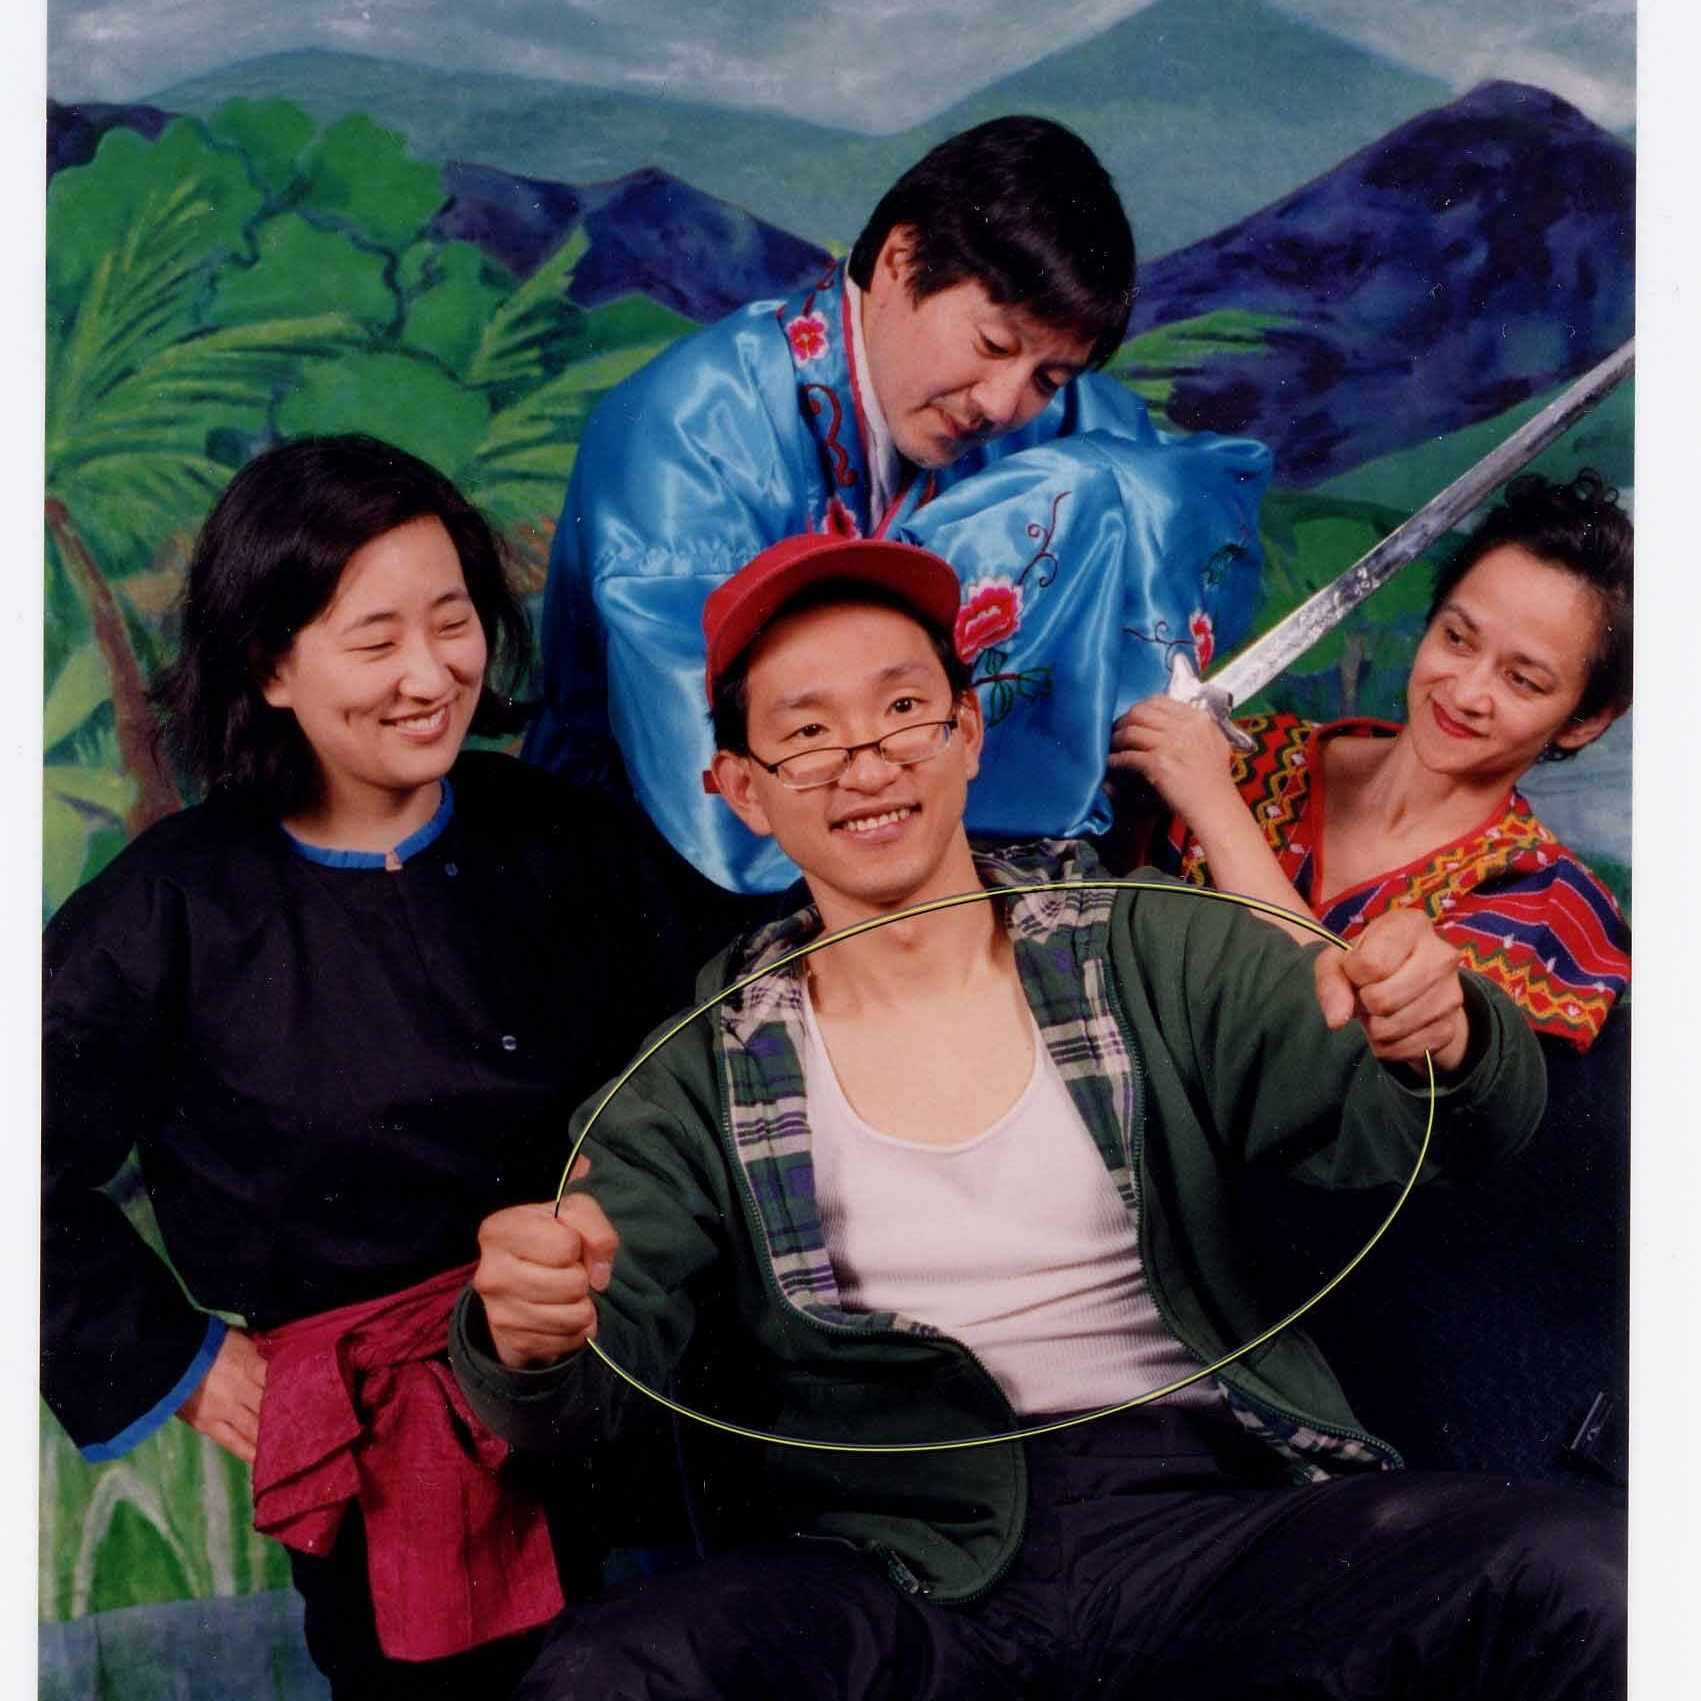 THE MAGIC BUS TO ASIAN FOLKTALES - written by R.A. Shiomi, Cha Yang, and Jaz Canlasdirected by Richard HitchierMusic by Gary Rue Musical director: Prudence JohnsonMay 2-22, 2003